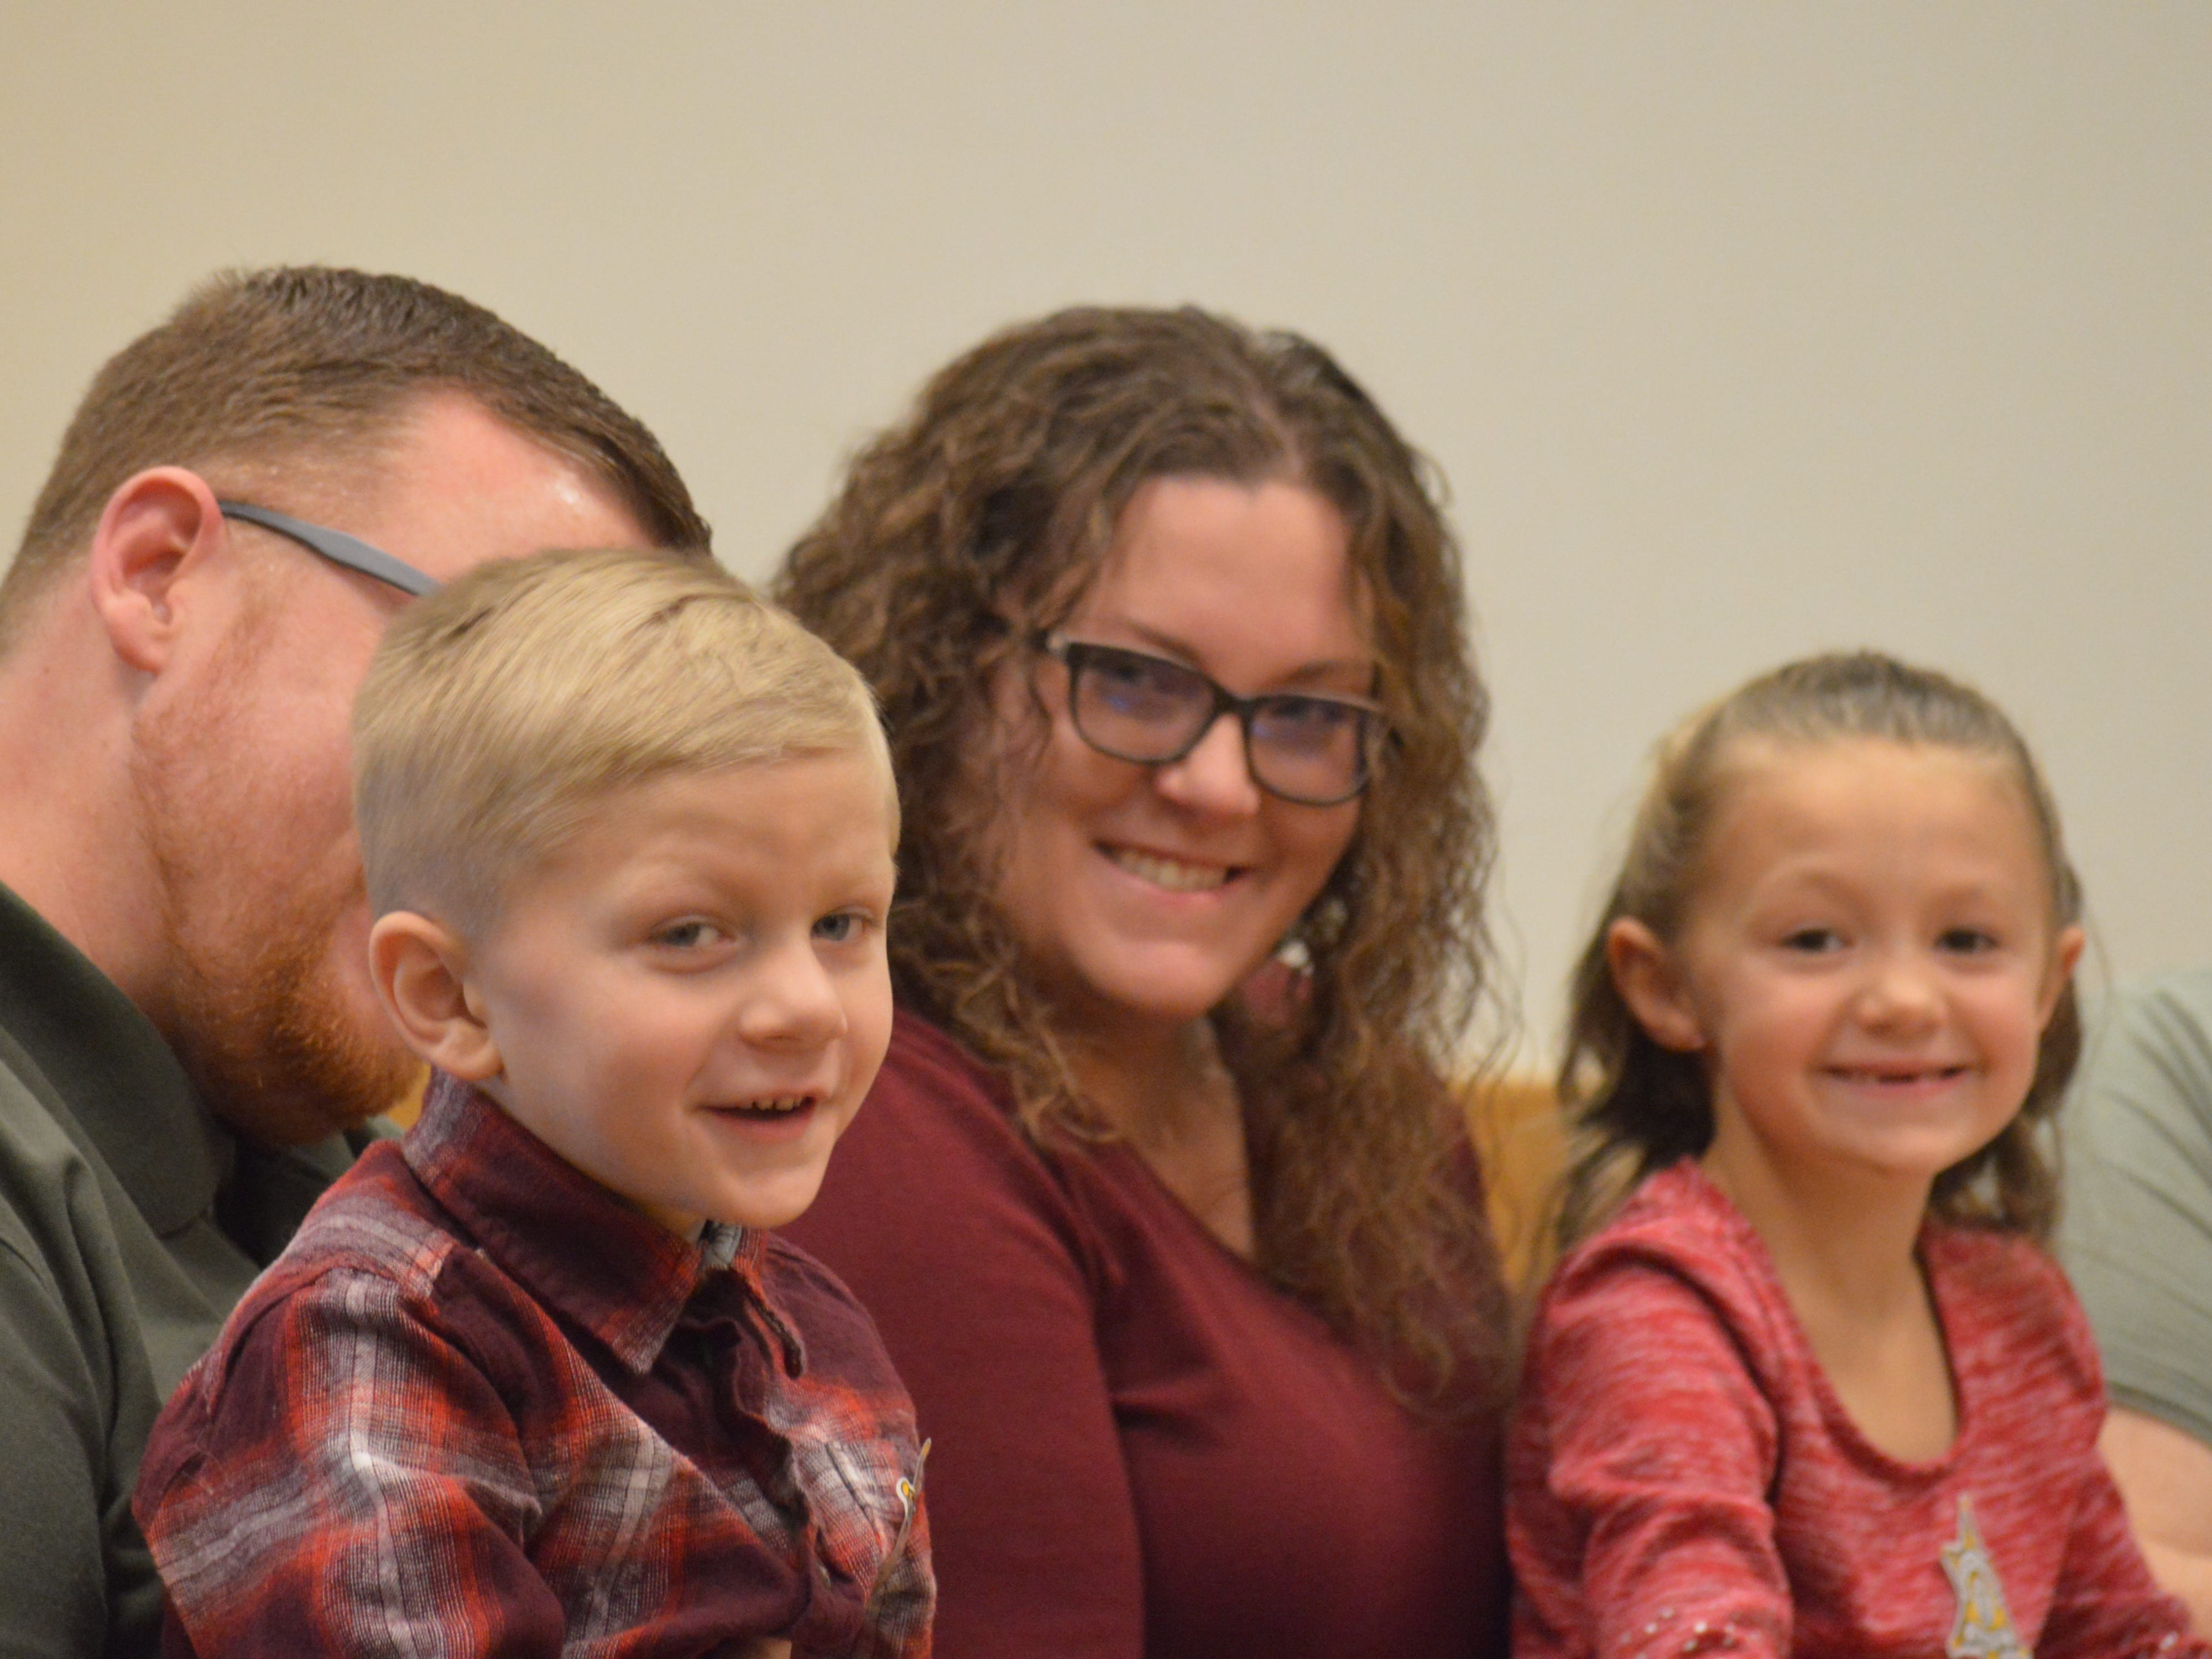 New parents Jeffrey and Erica Poag sit with their two children Jayden and Angel in Livingston County Chief Judge Miriam Cavanaugh's courtroom. The adoptions were finalized on Nov. 20, 2018.